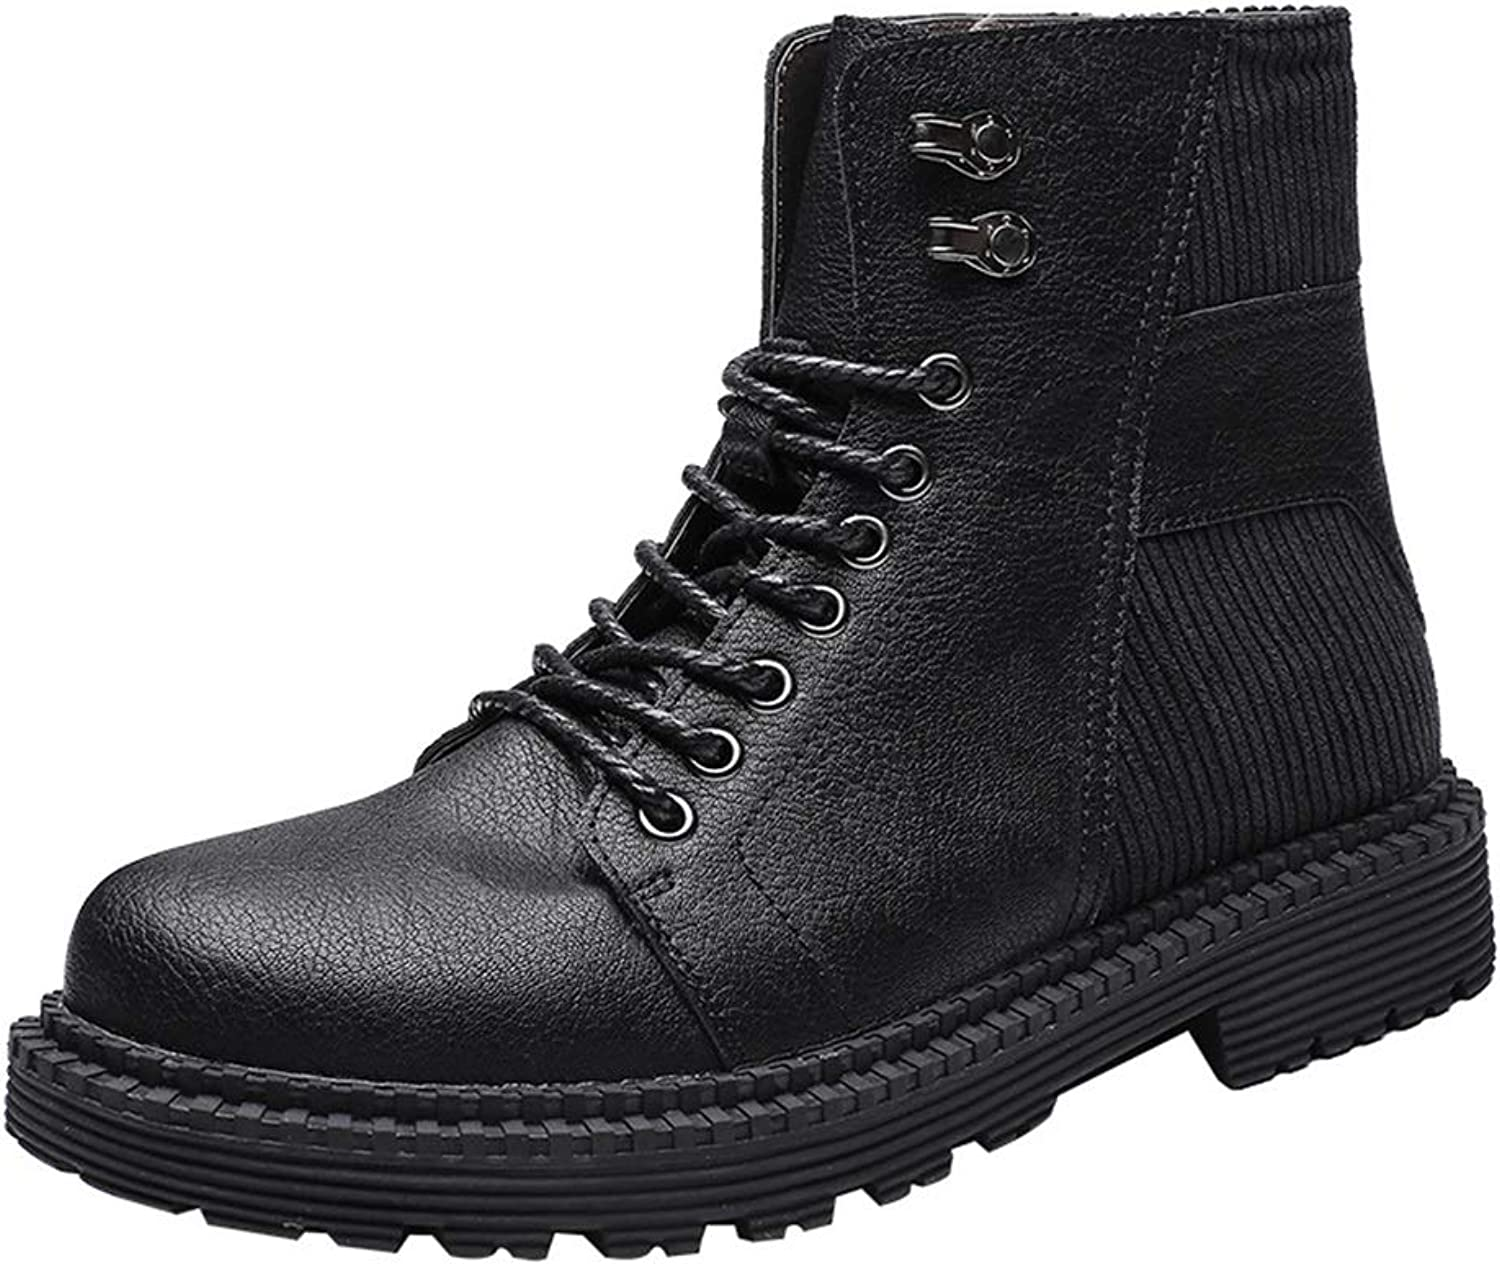 Men's shoes Men's Boots, Fall Winter New Retro Martin Boots Men's High-top Booties Casual Fashion Wild Large Size Boots 38-46 Men's Fashion Boots (color   A, Size   40)